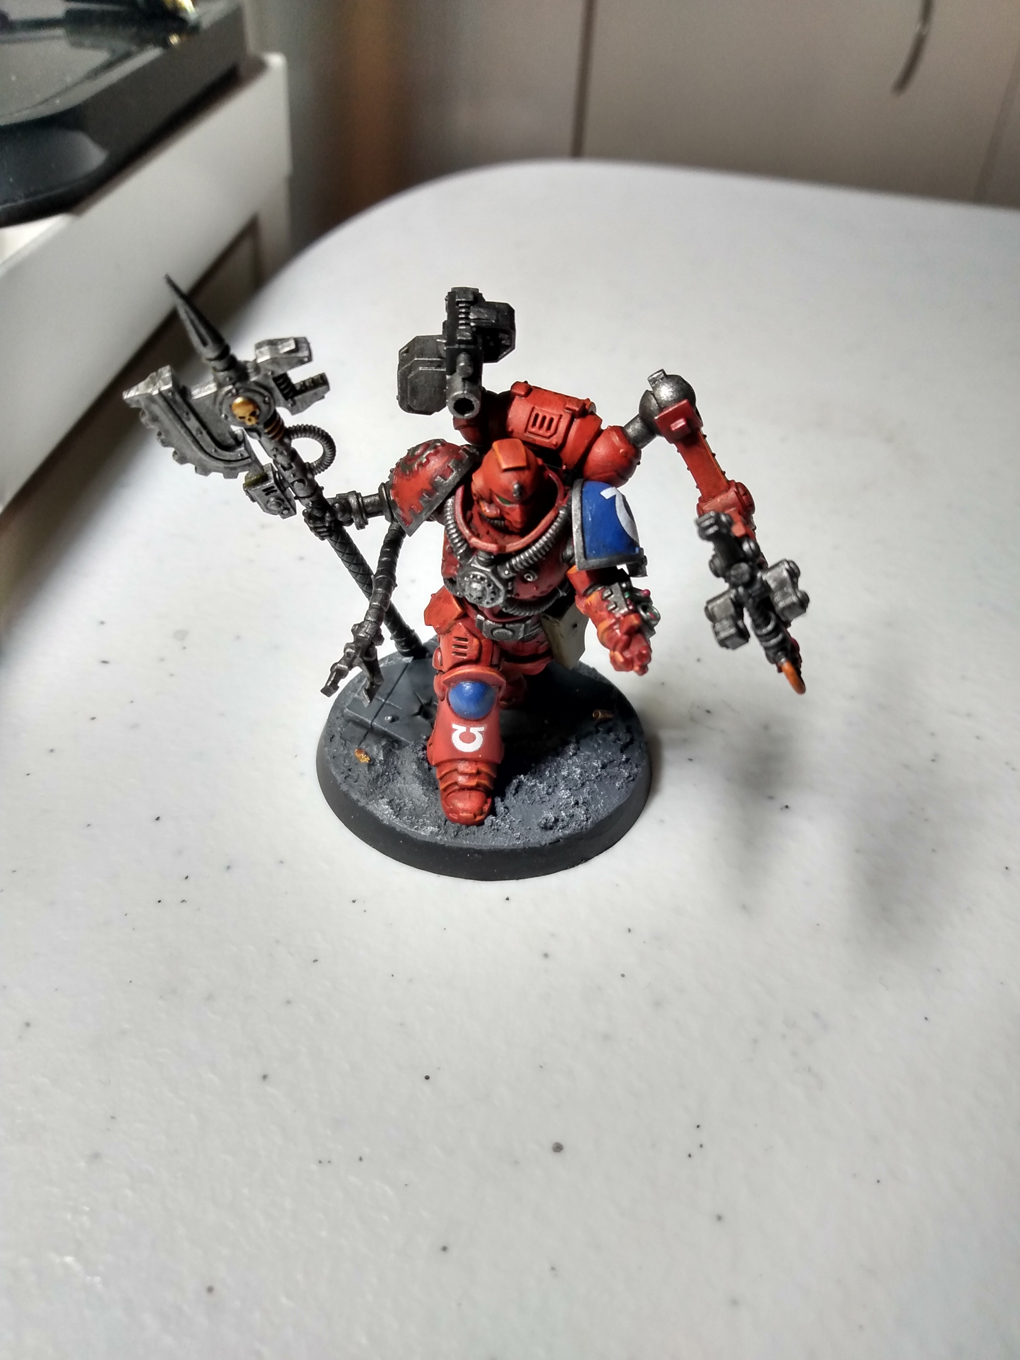 A red armoured space marine miniature sits of a table